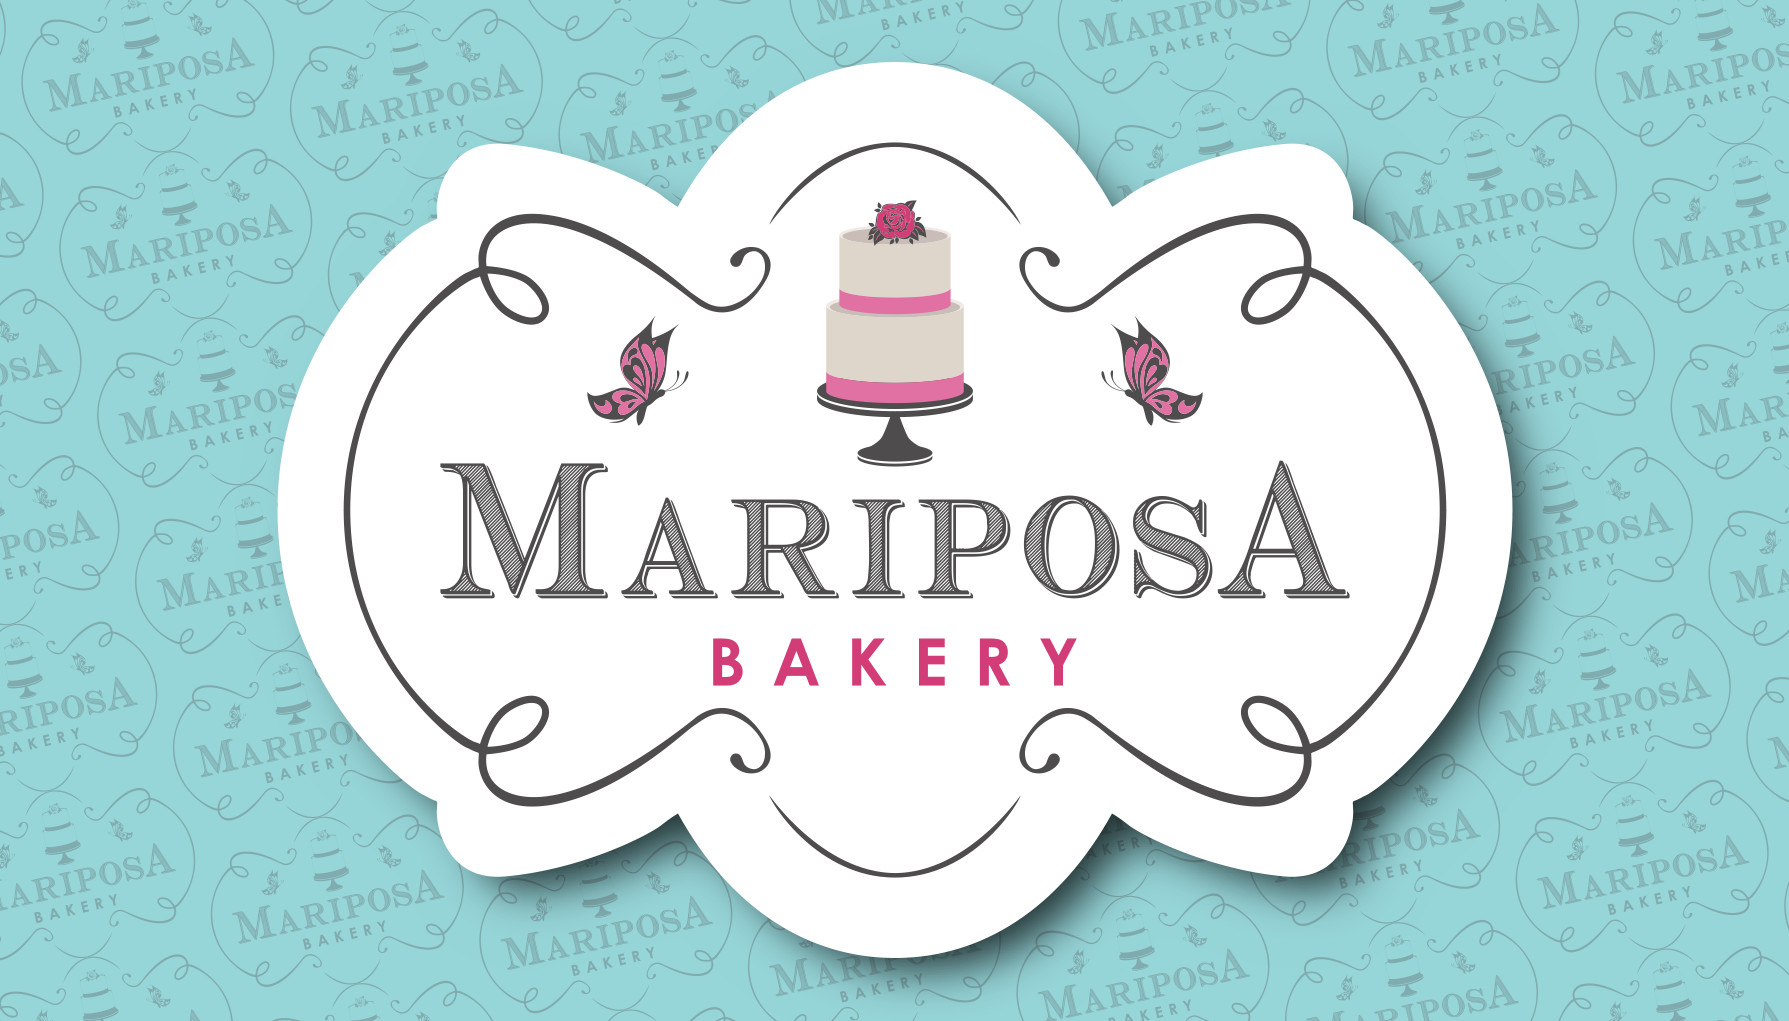 Mariposa In Spanish Means Butterfly English As The Name Denotes We Knew Wed Need To Incorporate Esque Elements Into Our Design